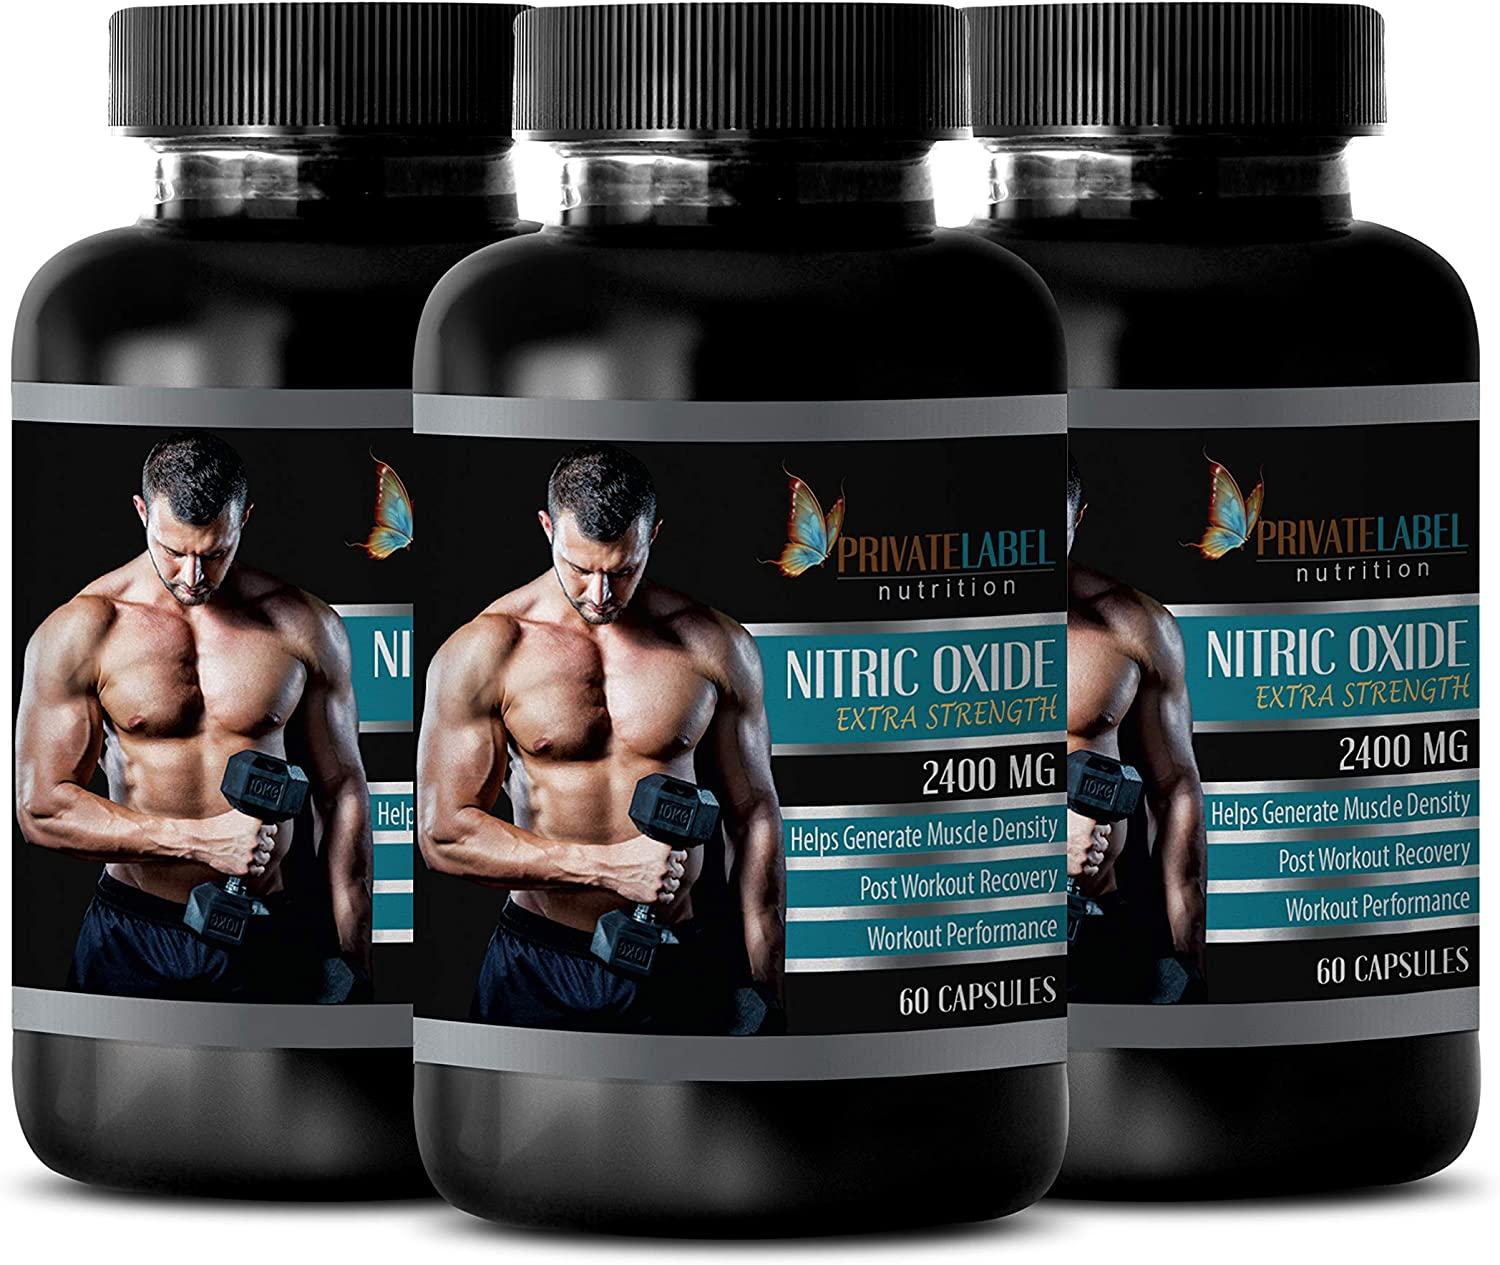 Attention New popularity brand Enhancement for Men - Nitric mg 2400 Oxide Muscle